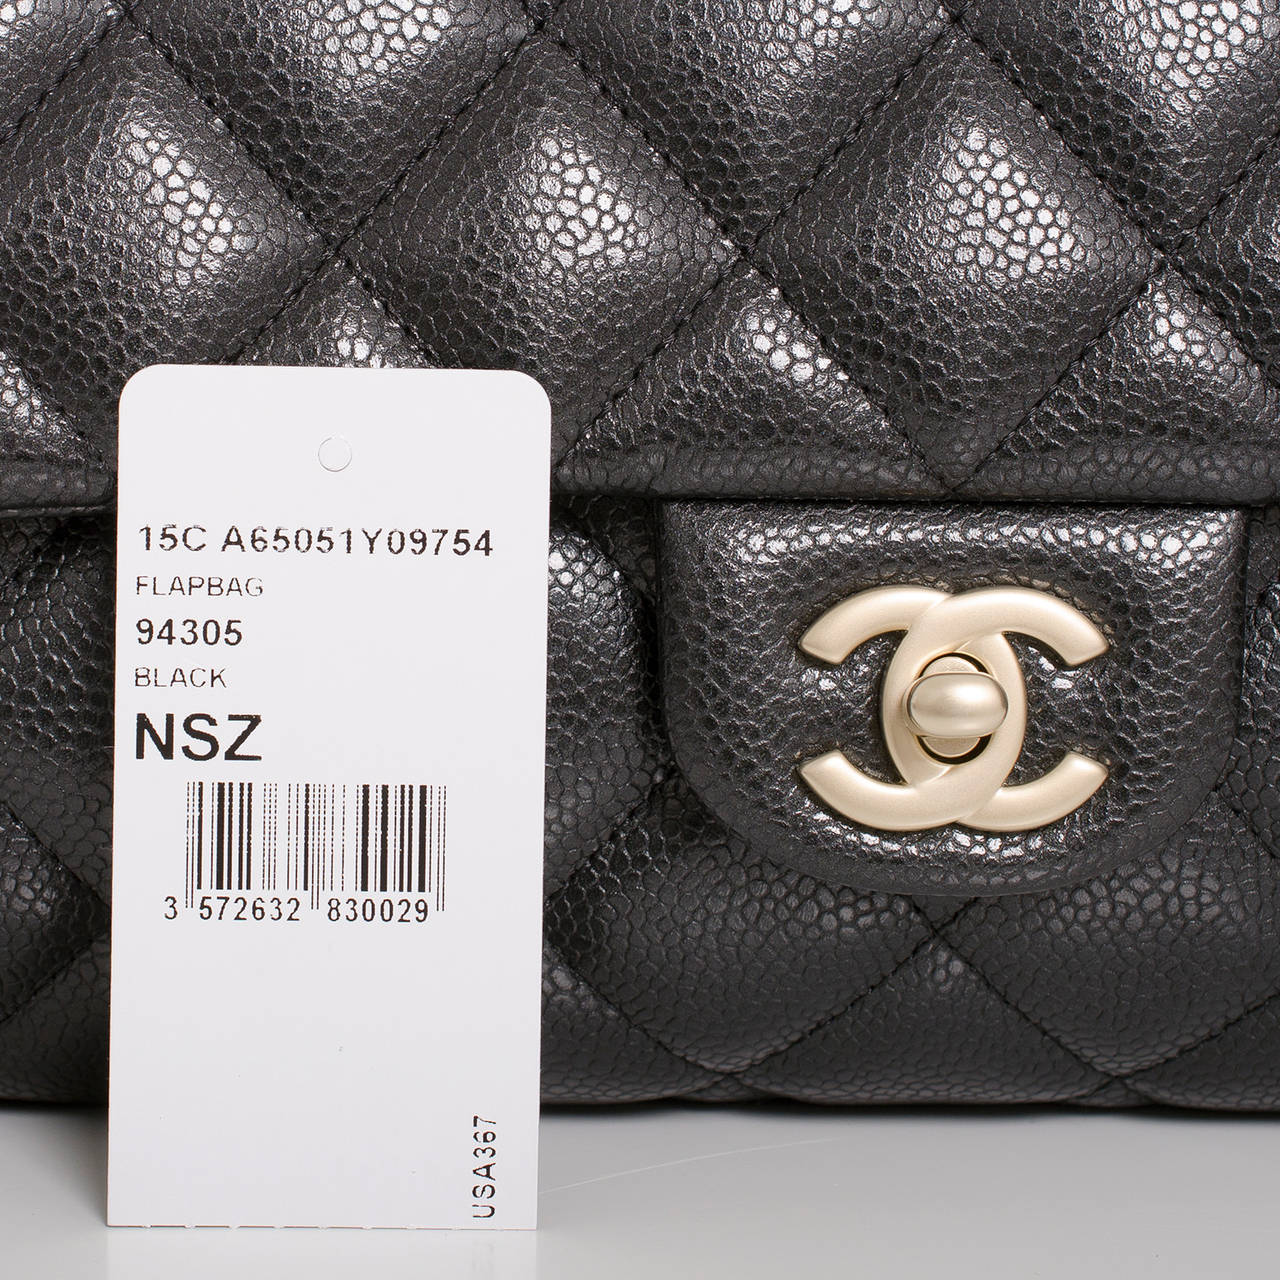 Chanel Black Quilted Caviar New Clutch With Chain For Sale 3